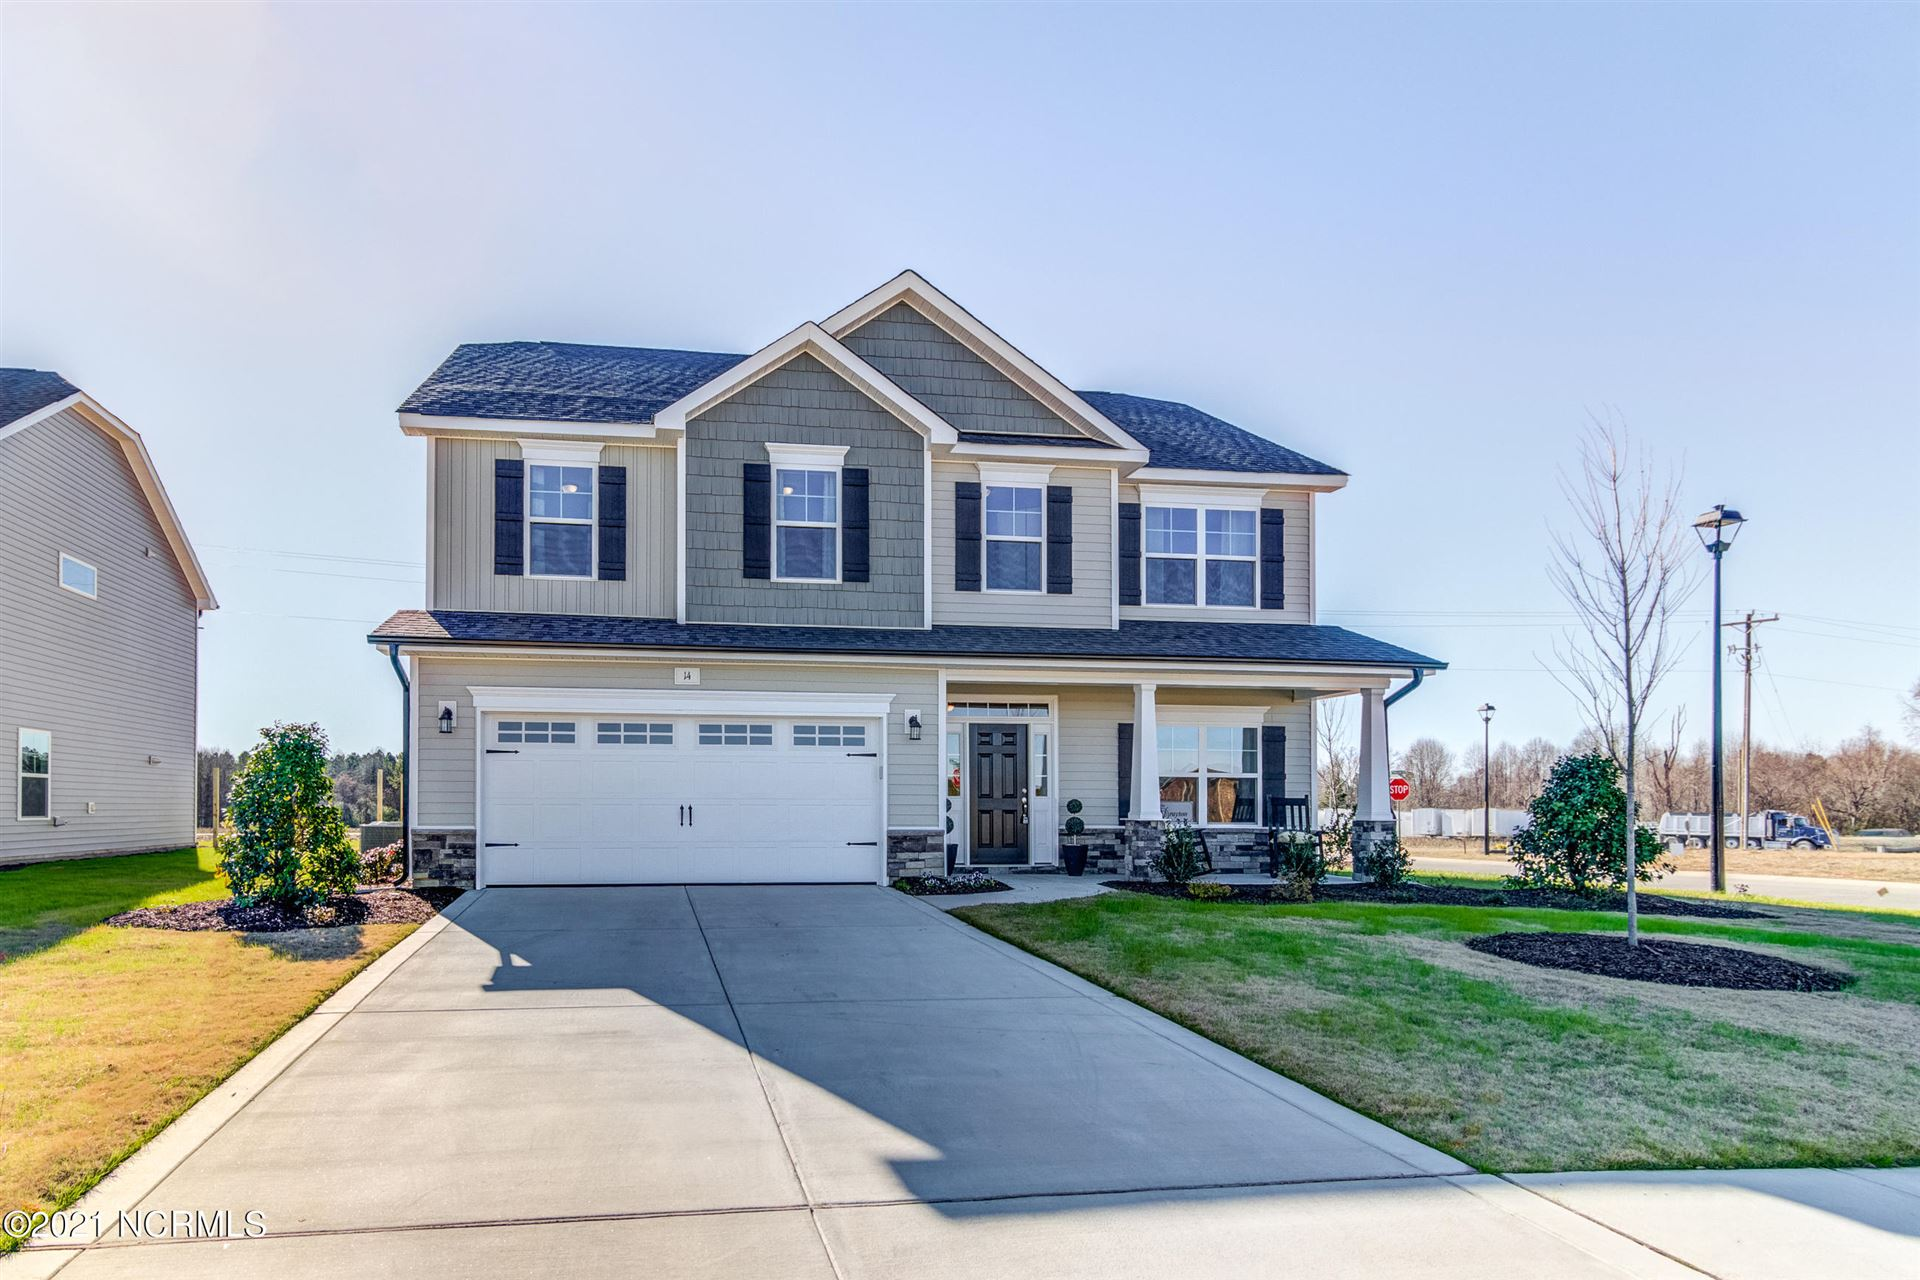 Photo of 510 Transom Way, Sneads Ferry, NC 28460 (MLS # 100295903)